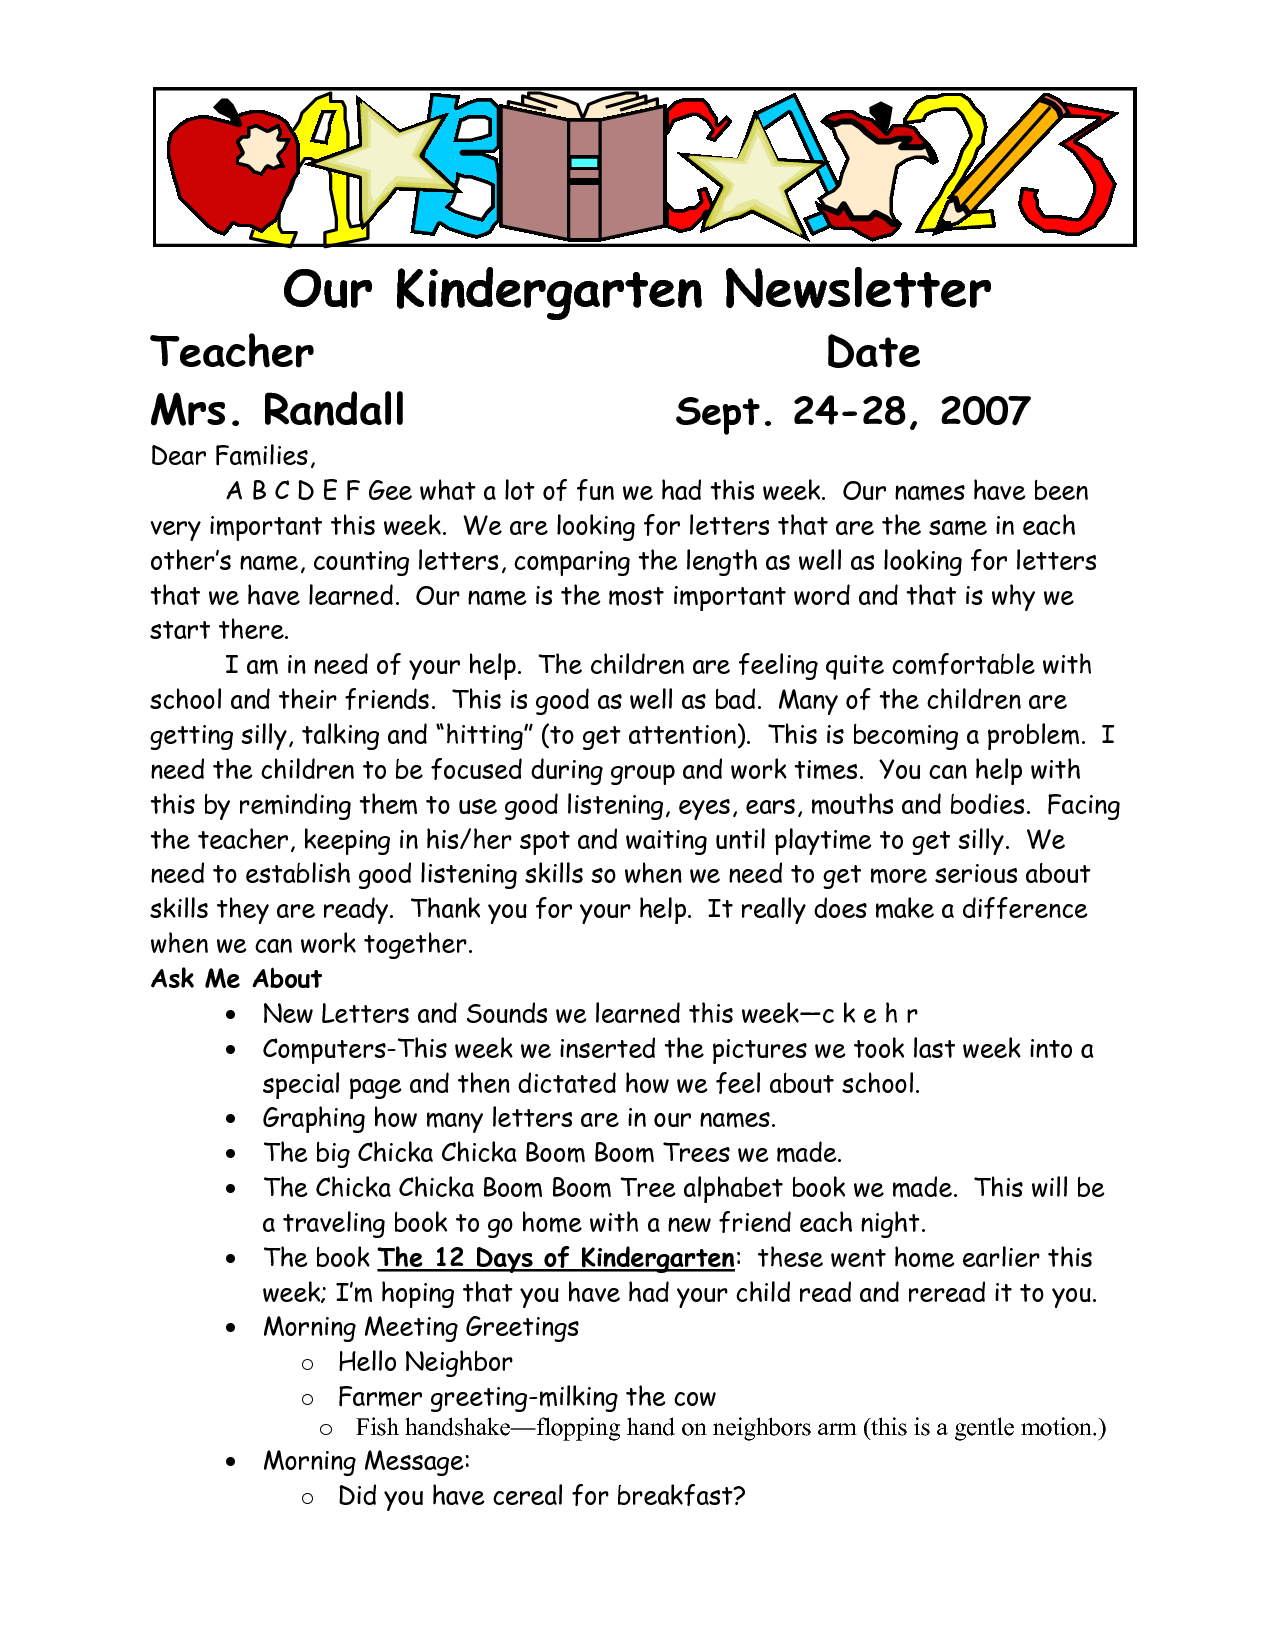 letter to parents template from teachers - sample welcome to kindergarten letters our kindergarten newsletter kindergarten newl letter